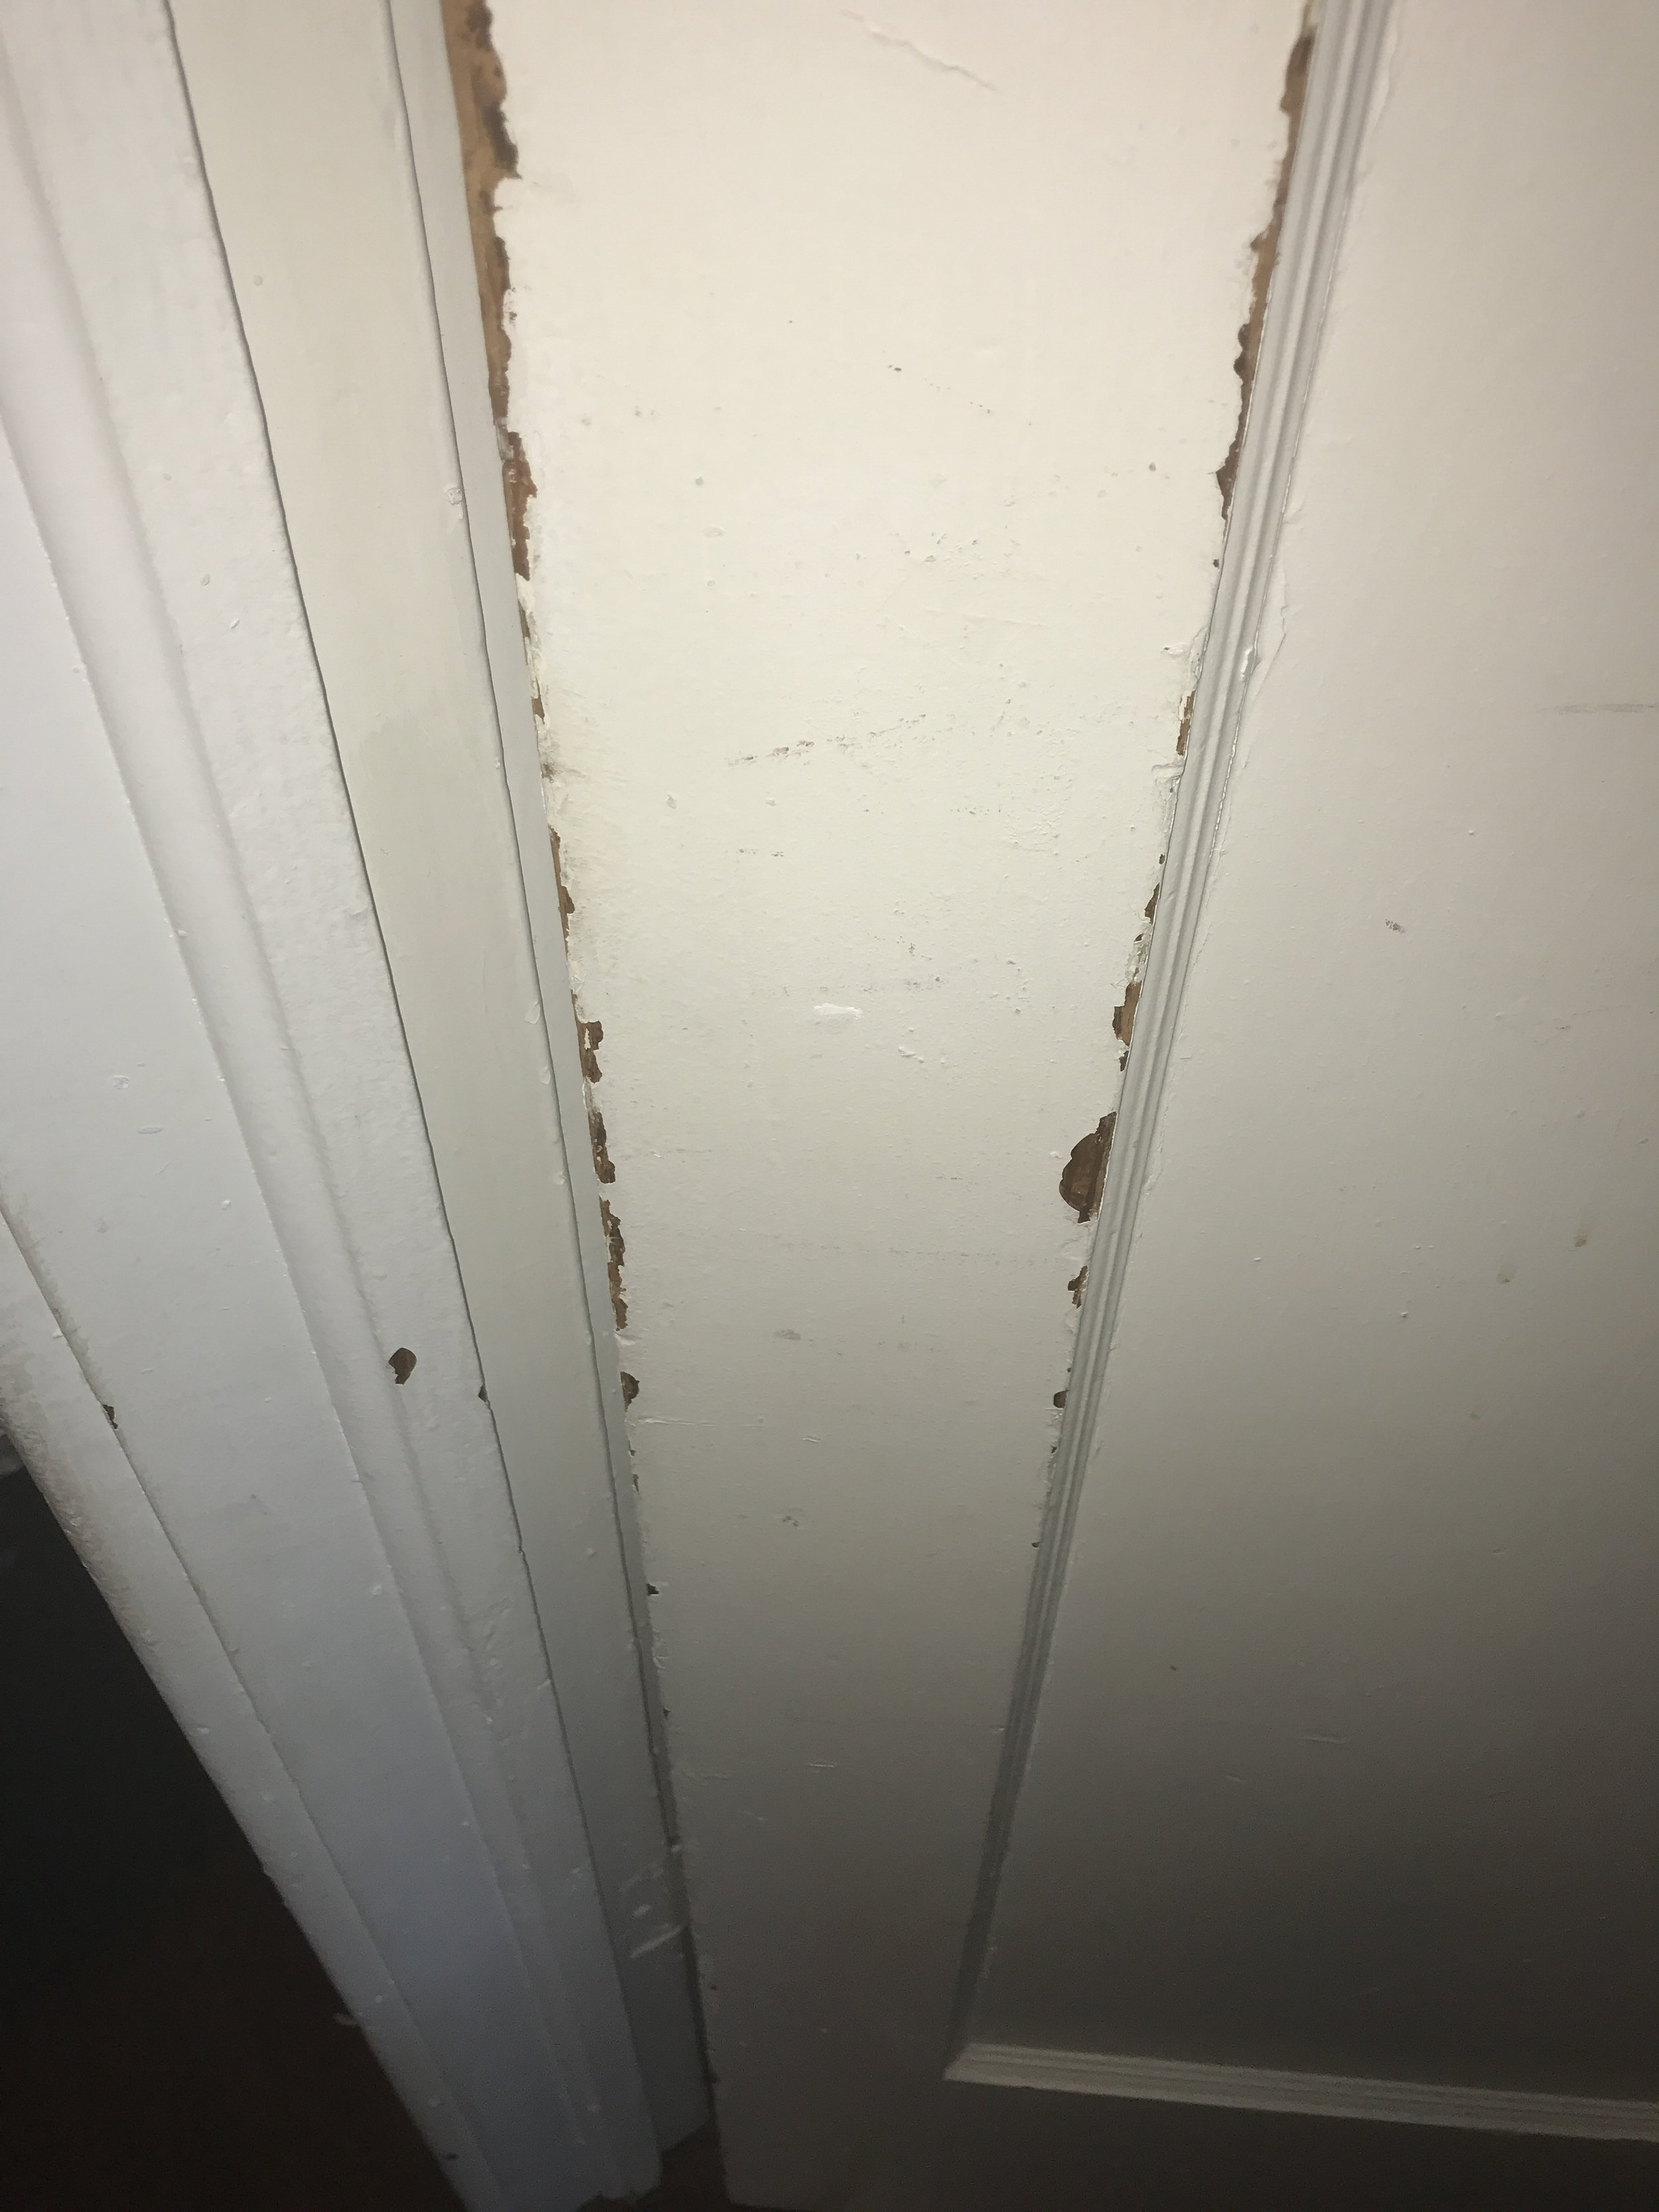 Latex paint has chipped off of the stiles on this interior door. The paint was applied directly over the existing oil based varnish.